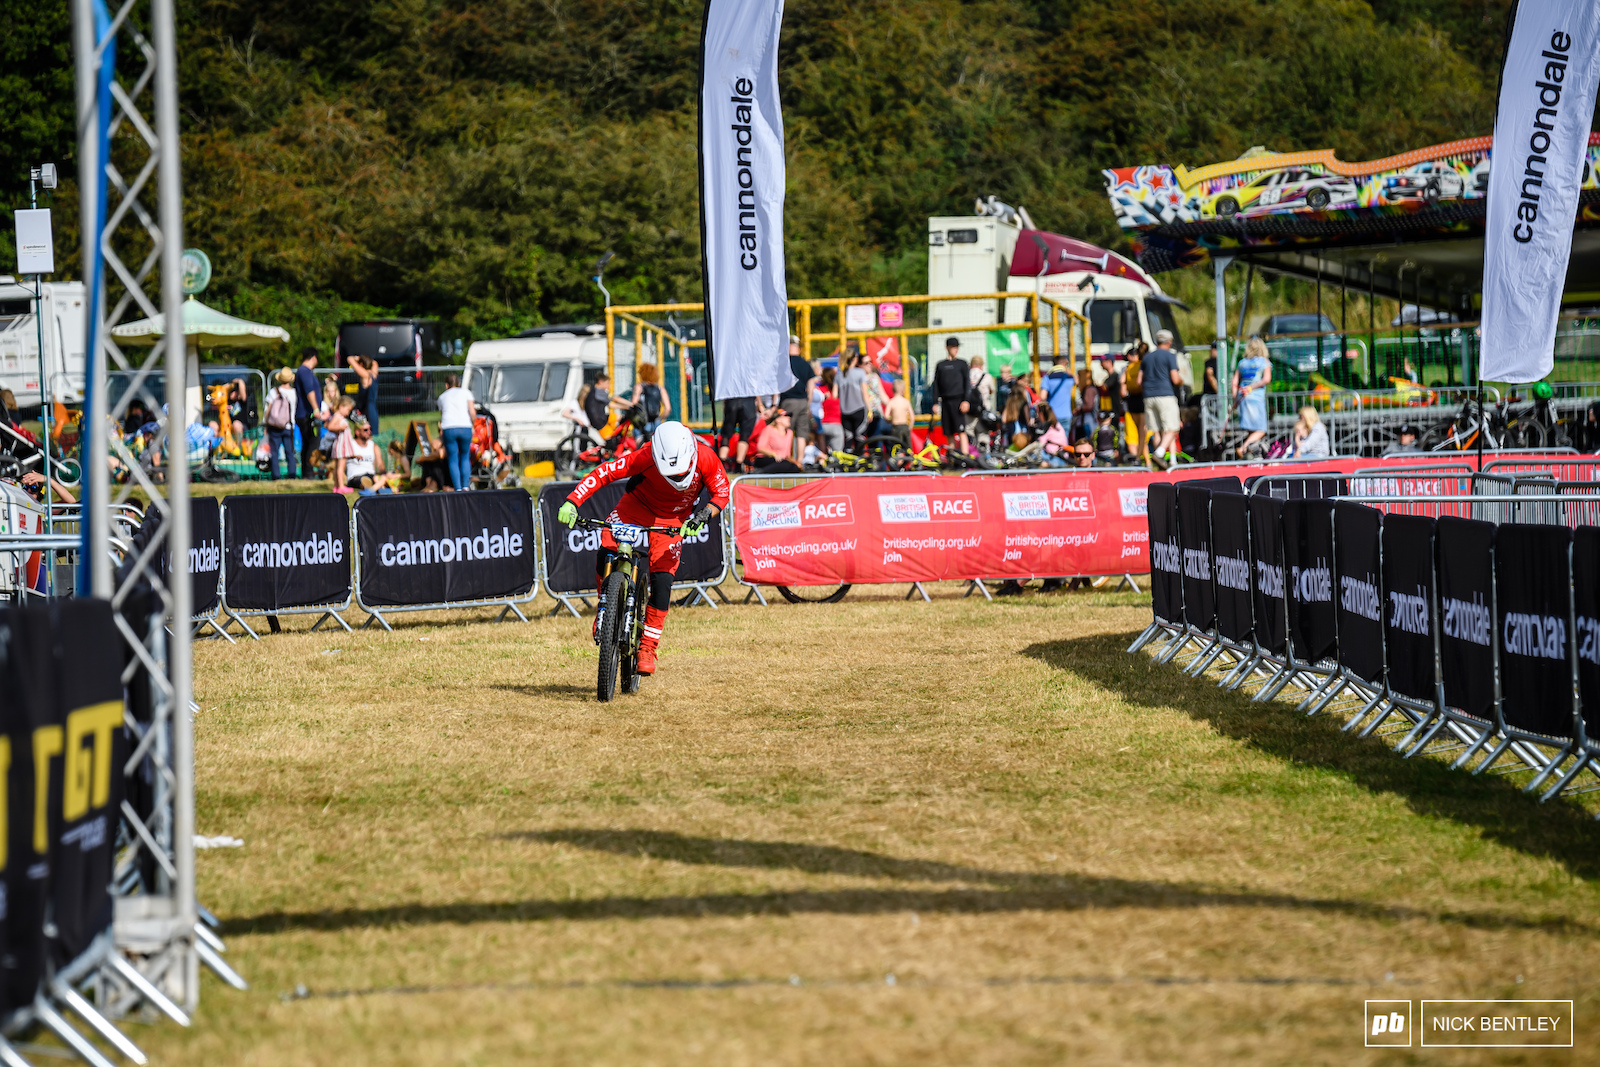 Stu Hughes powering his way to the win in the Vets field